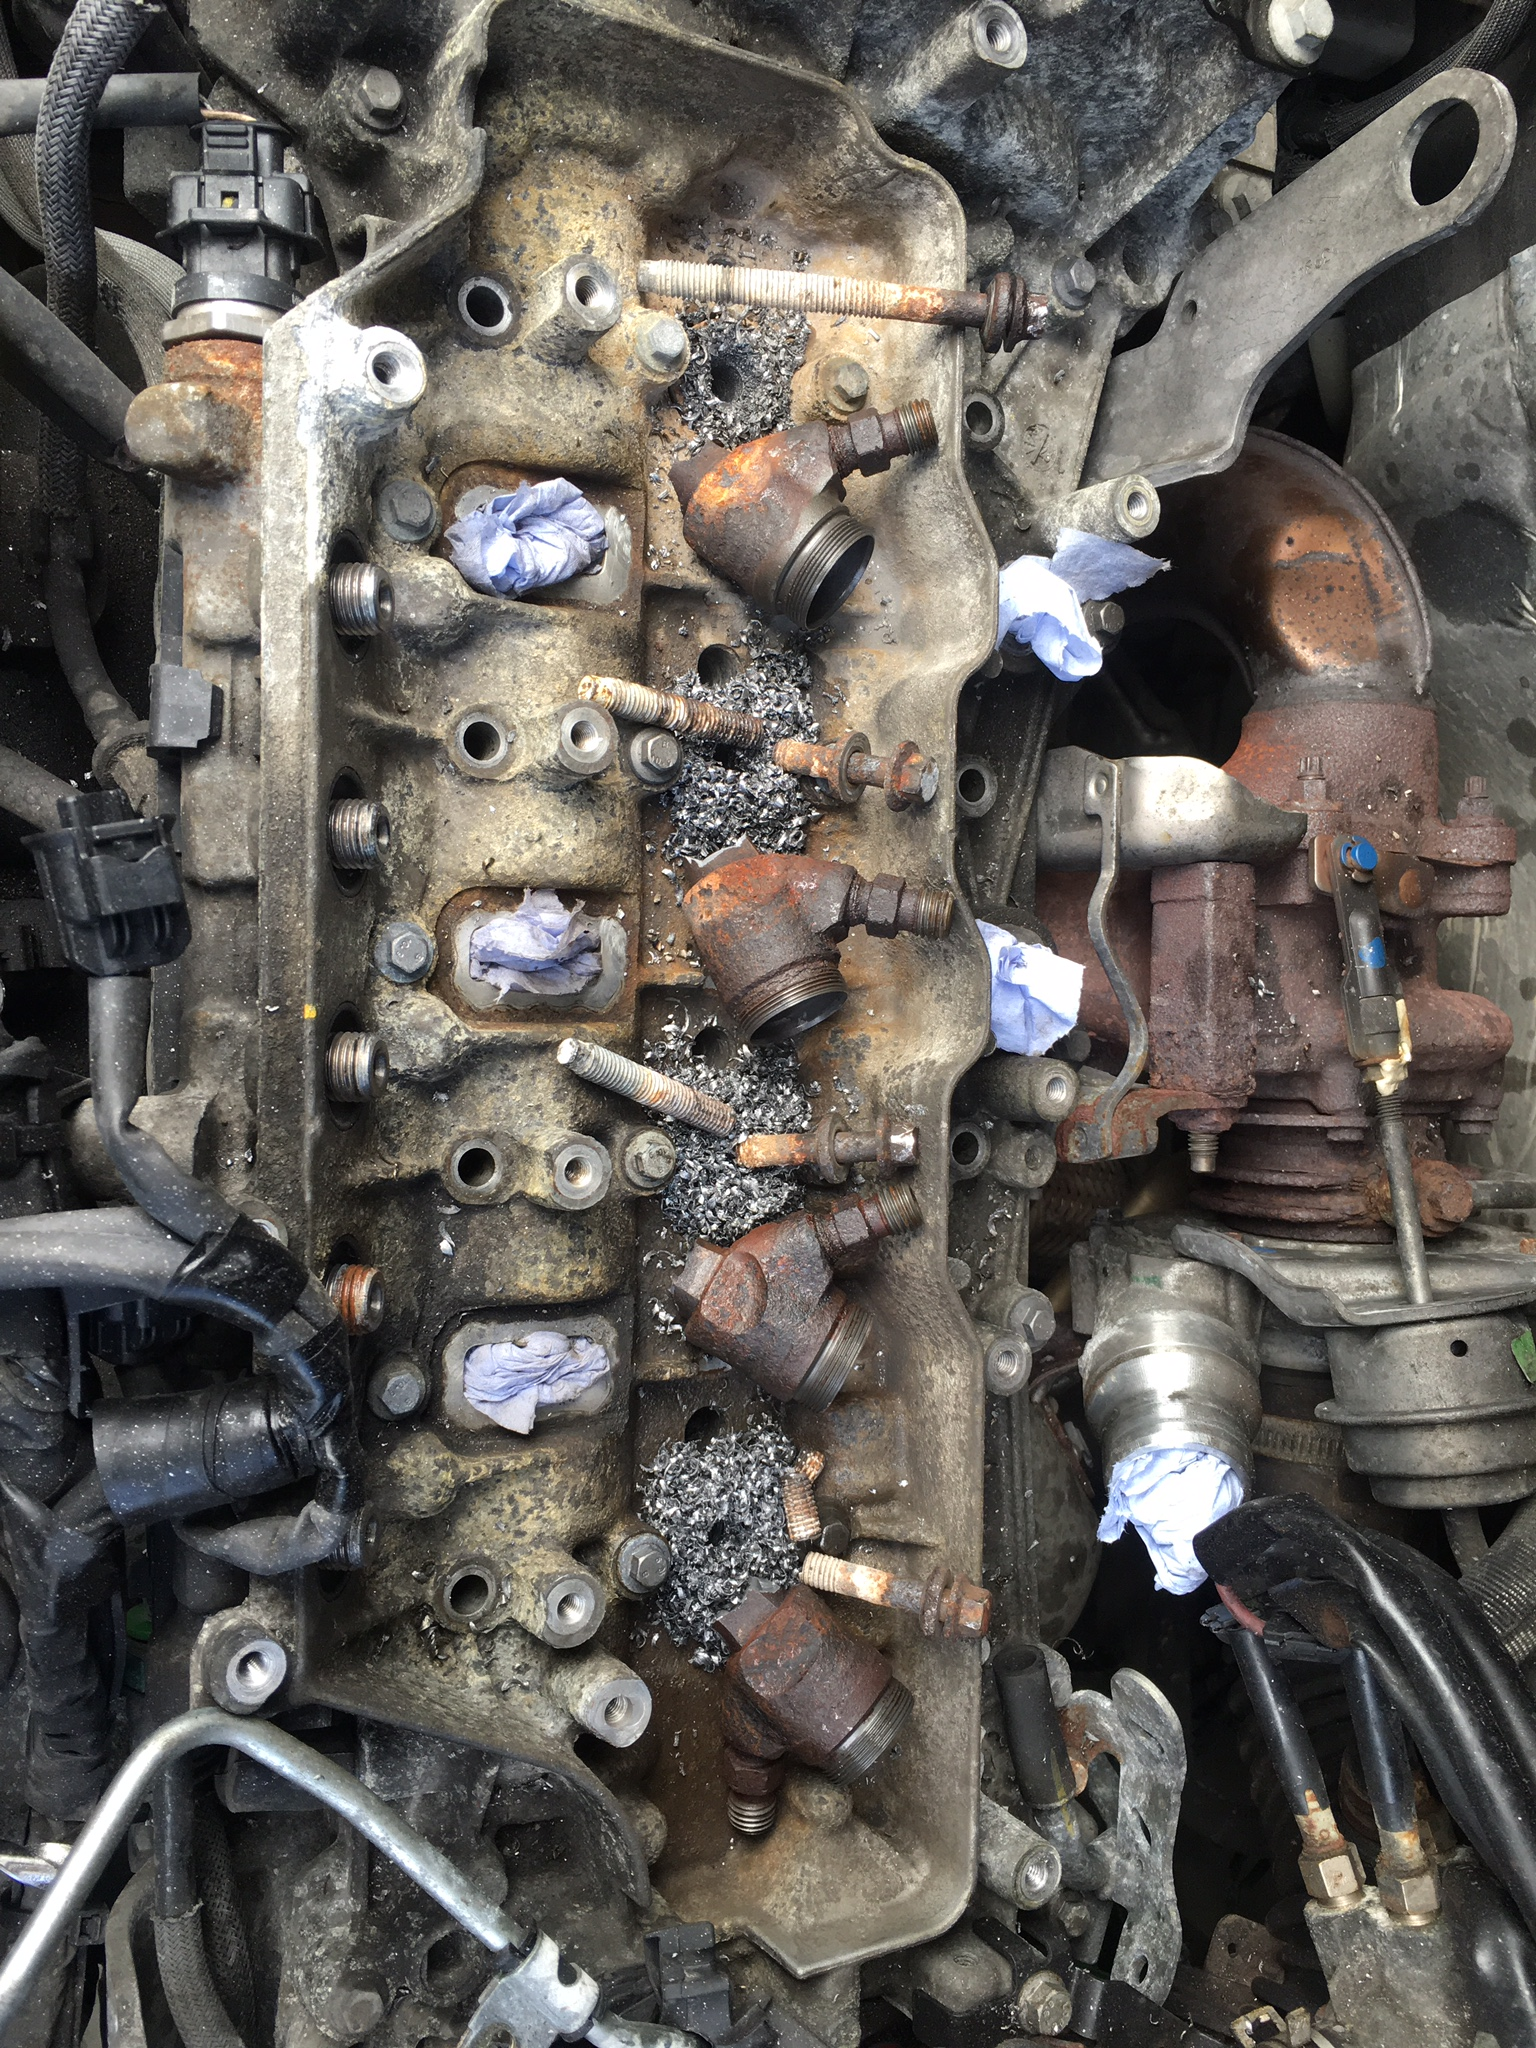 This could be described as a worst case scenario - all injectors broke from the top and injector bolts all requiring drilling. The vehicle is a Vaauxhall Vivaro 2011 2.0 cdti engine